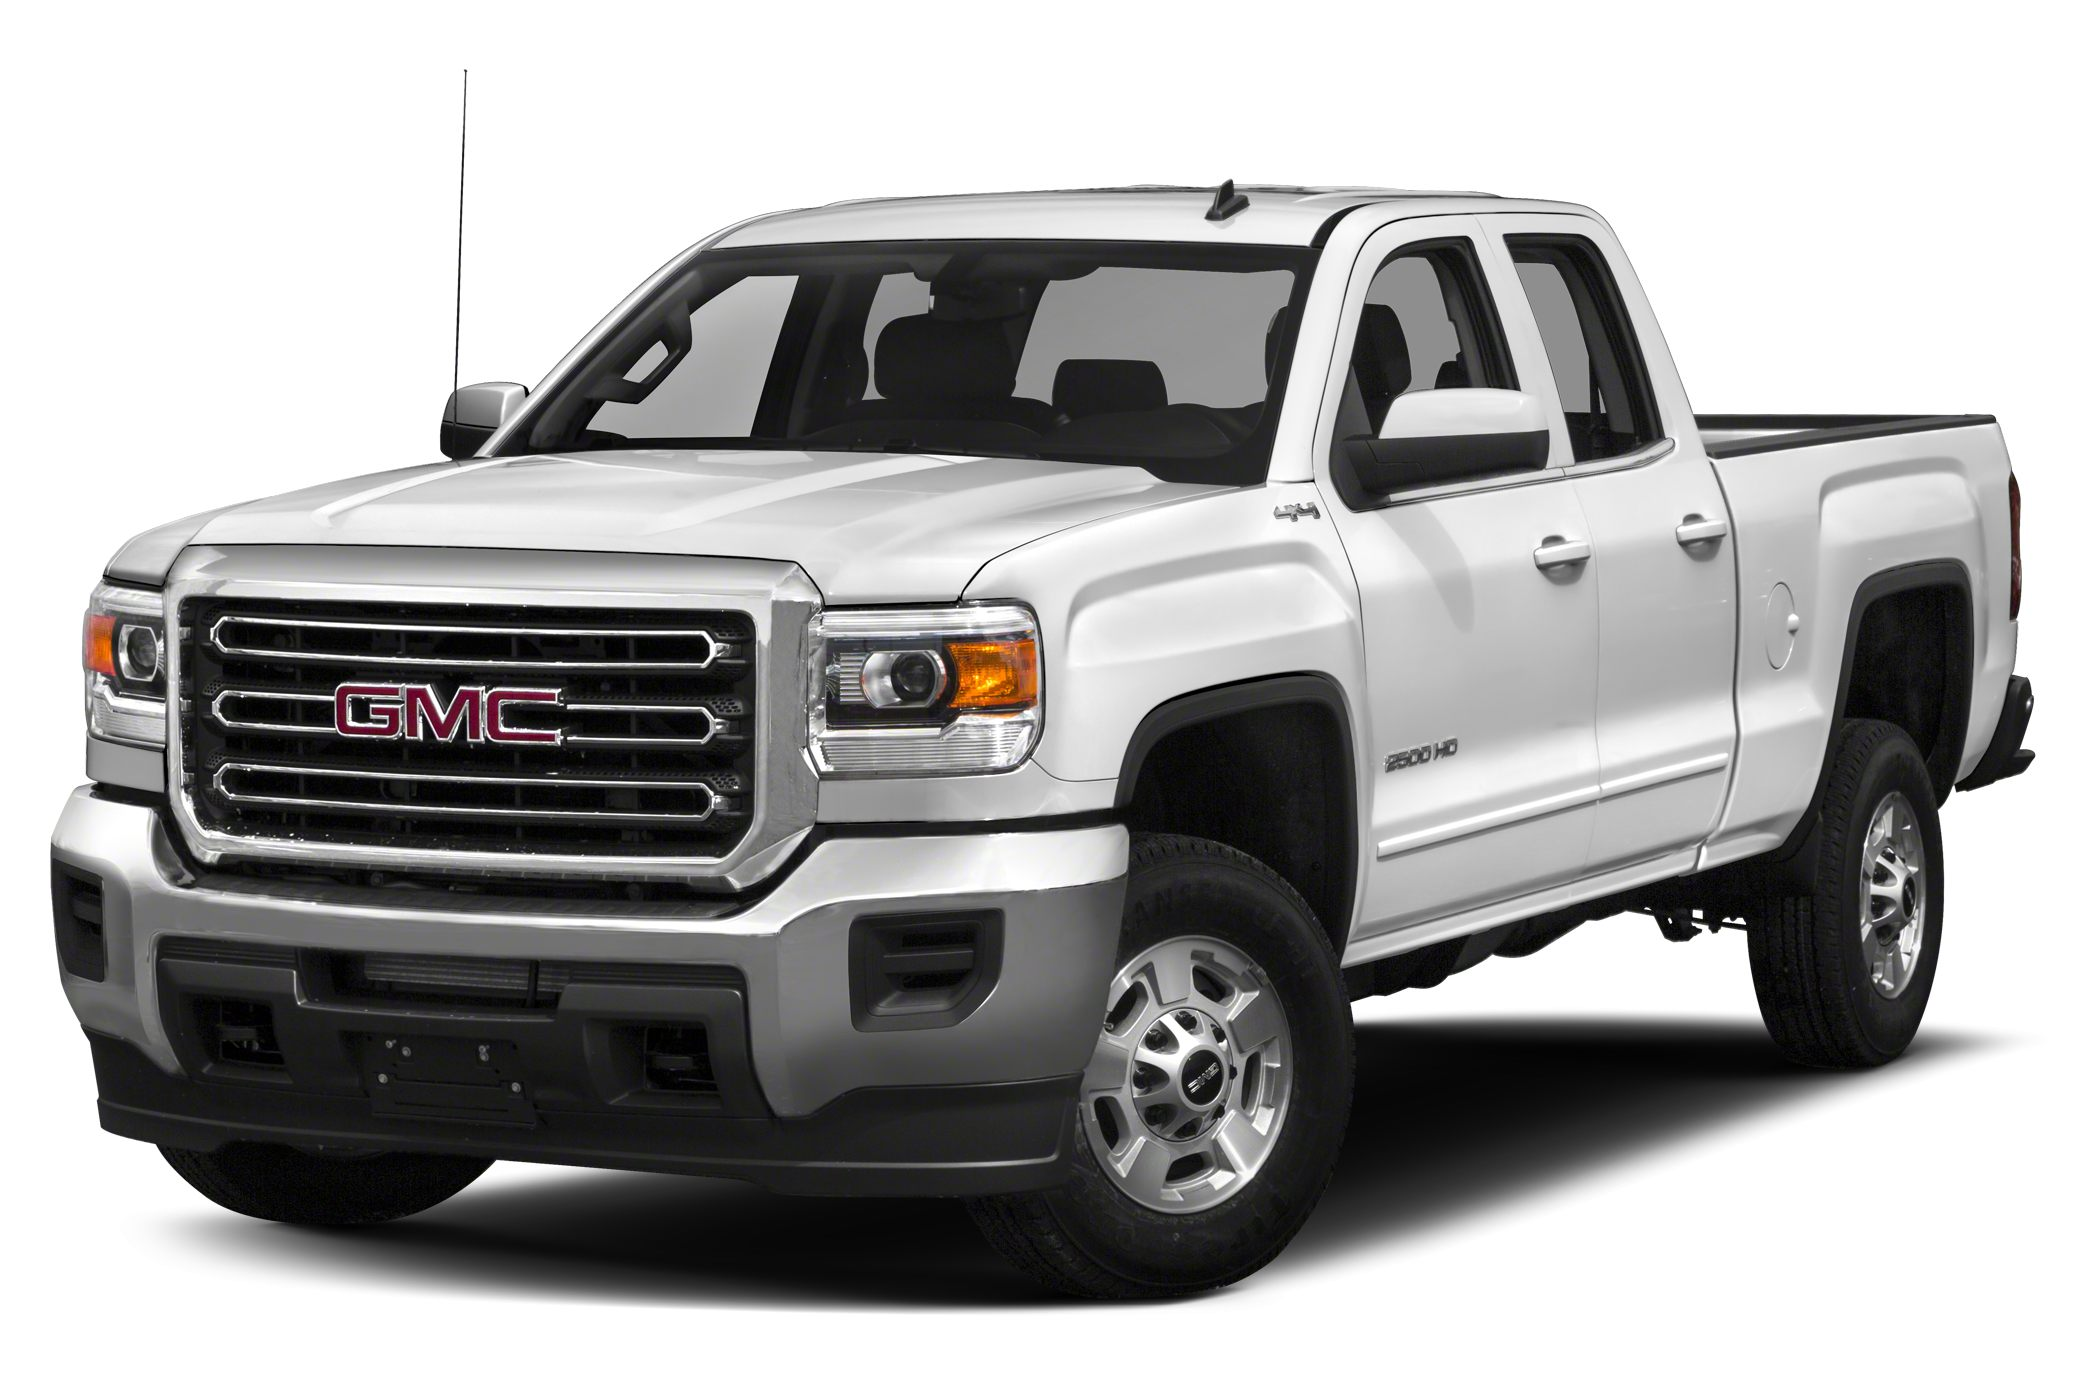 2015 GMC Sierra 2500 Base Crew Cab Pickup for sale in Neosho for $42,155 with 1 miles